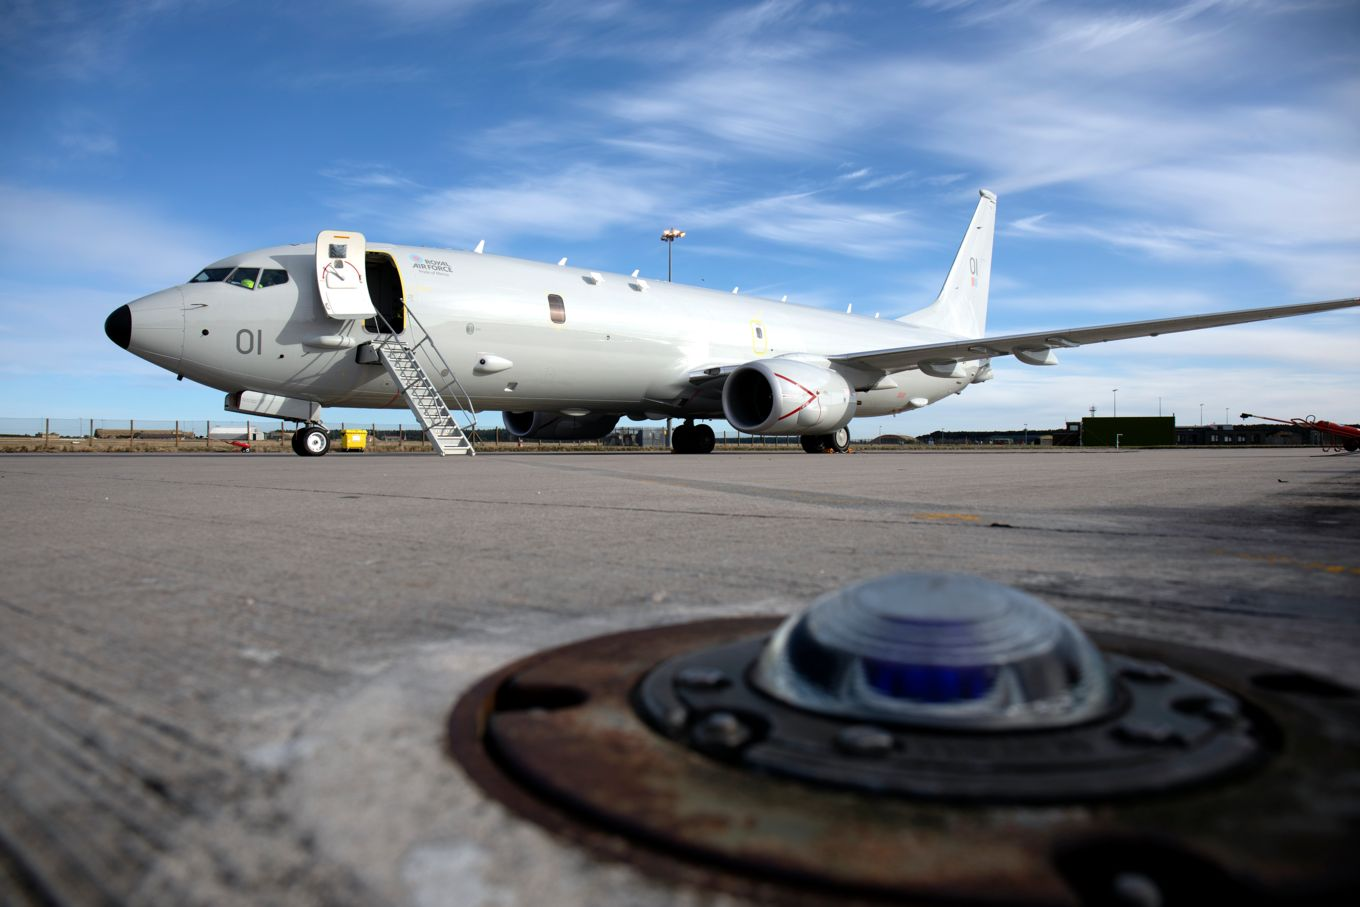 Royal Air Force Declare Poseidon MRA Mk1 Maritime Patrol Aircraft an Initial Operating Capability